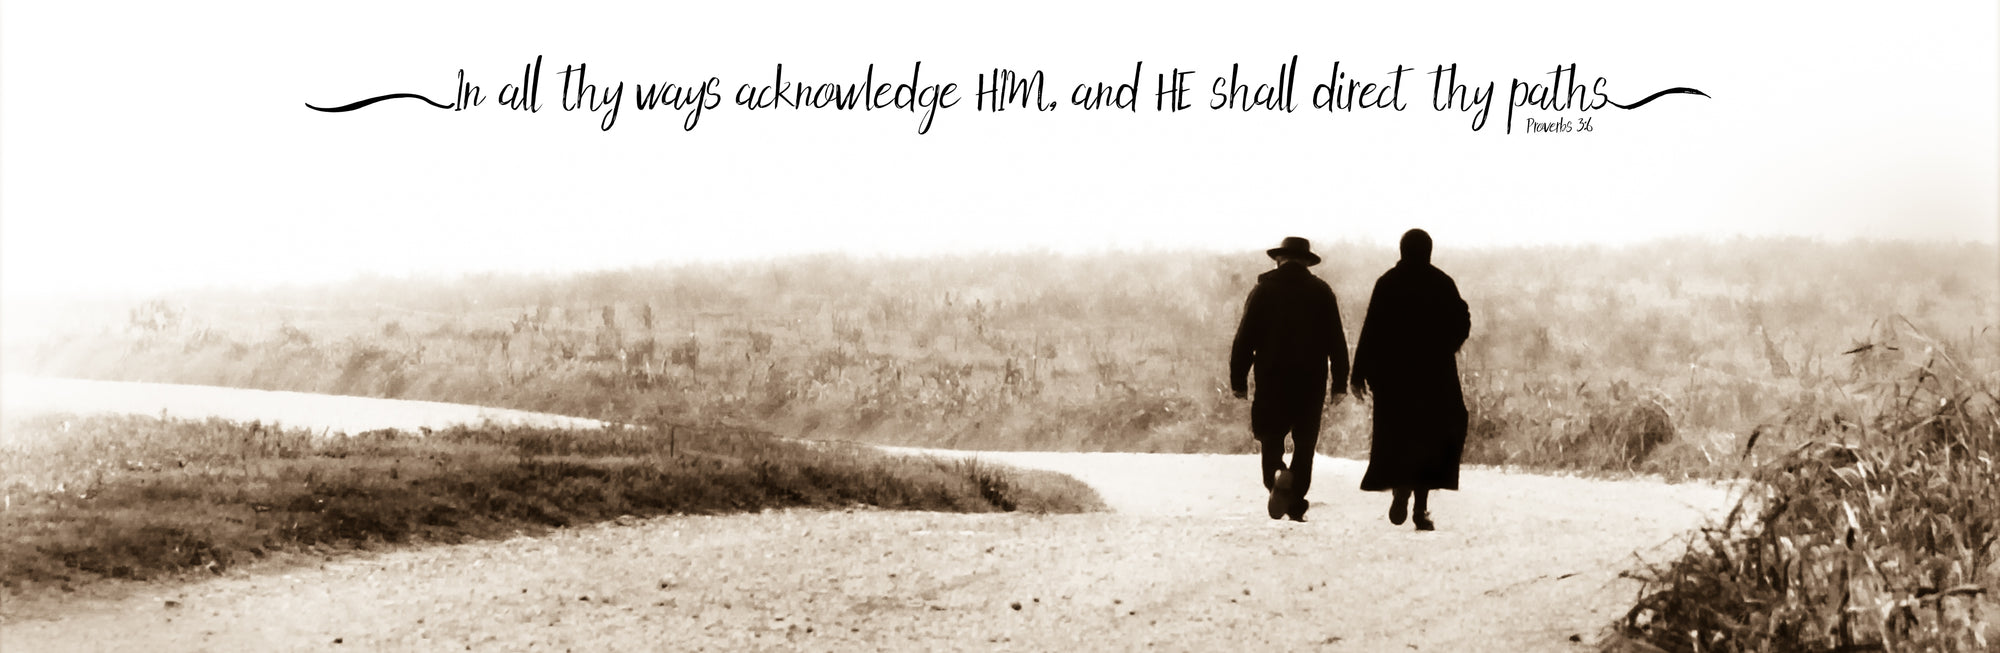 Amish couple walking down road with scripture verse